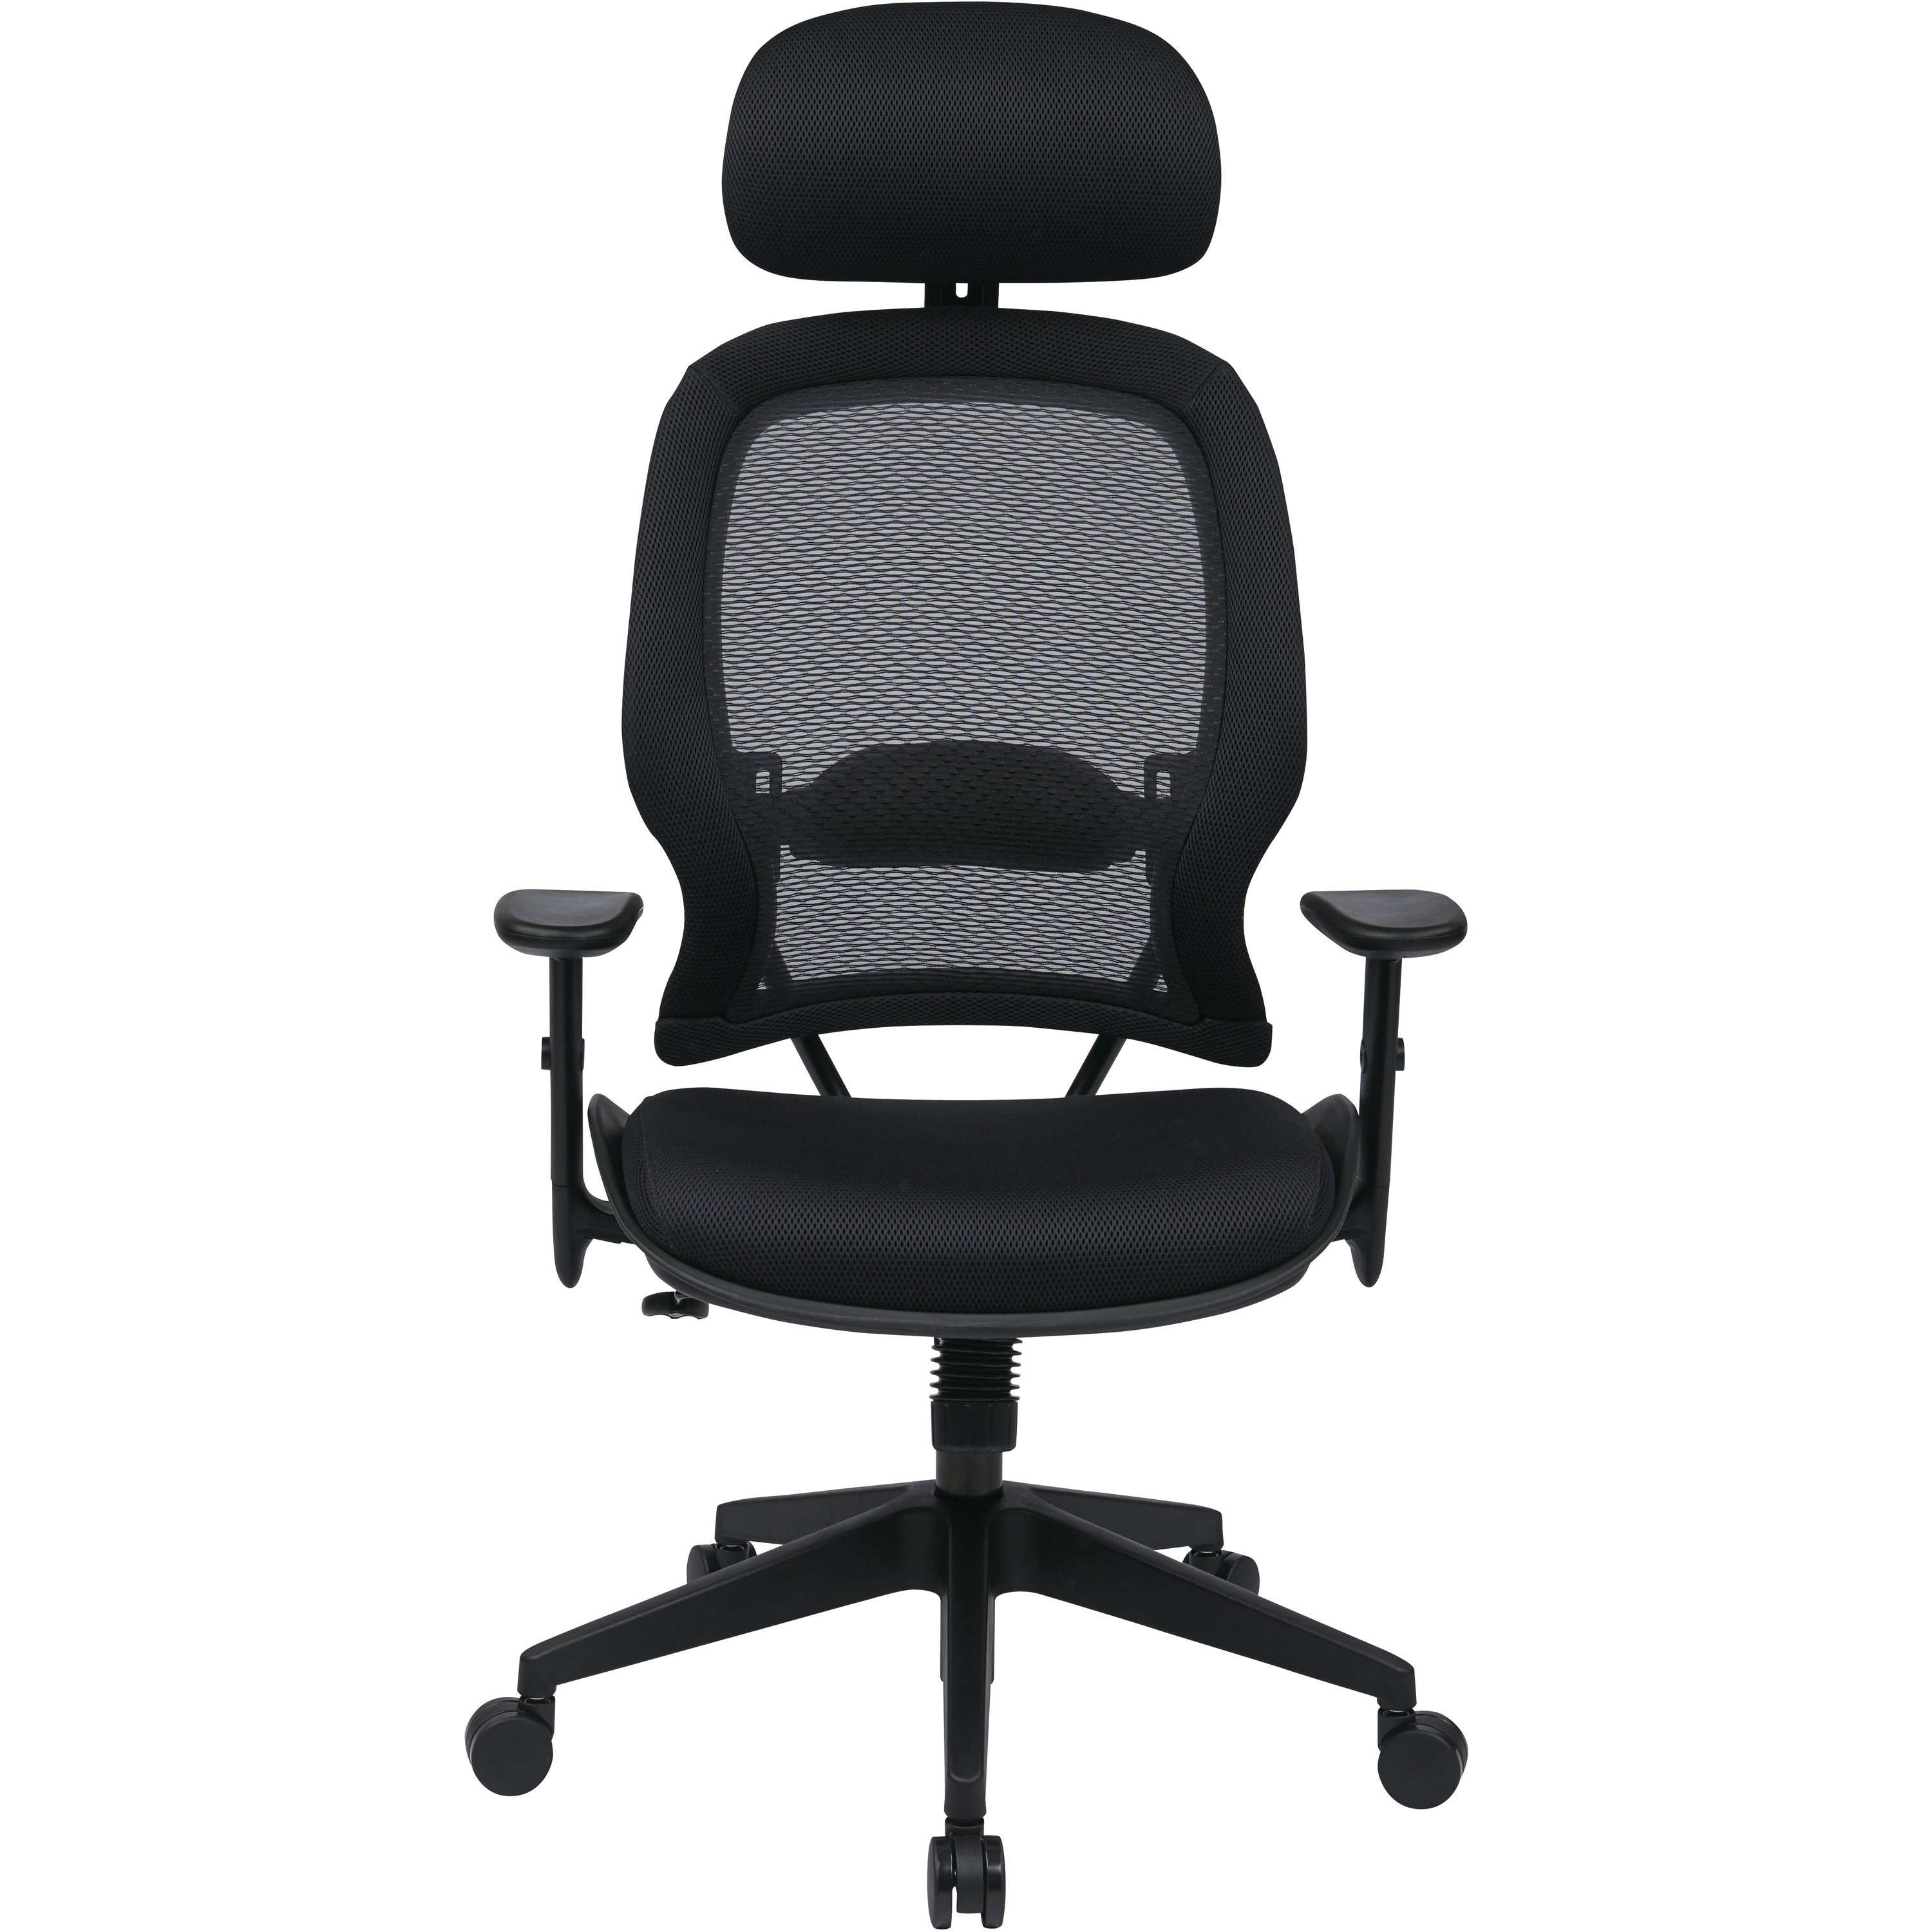 office star professional air grid chair with adjustable headrest